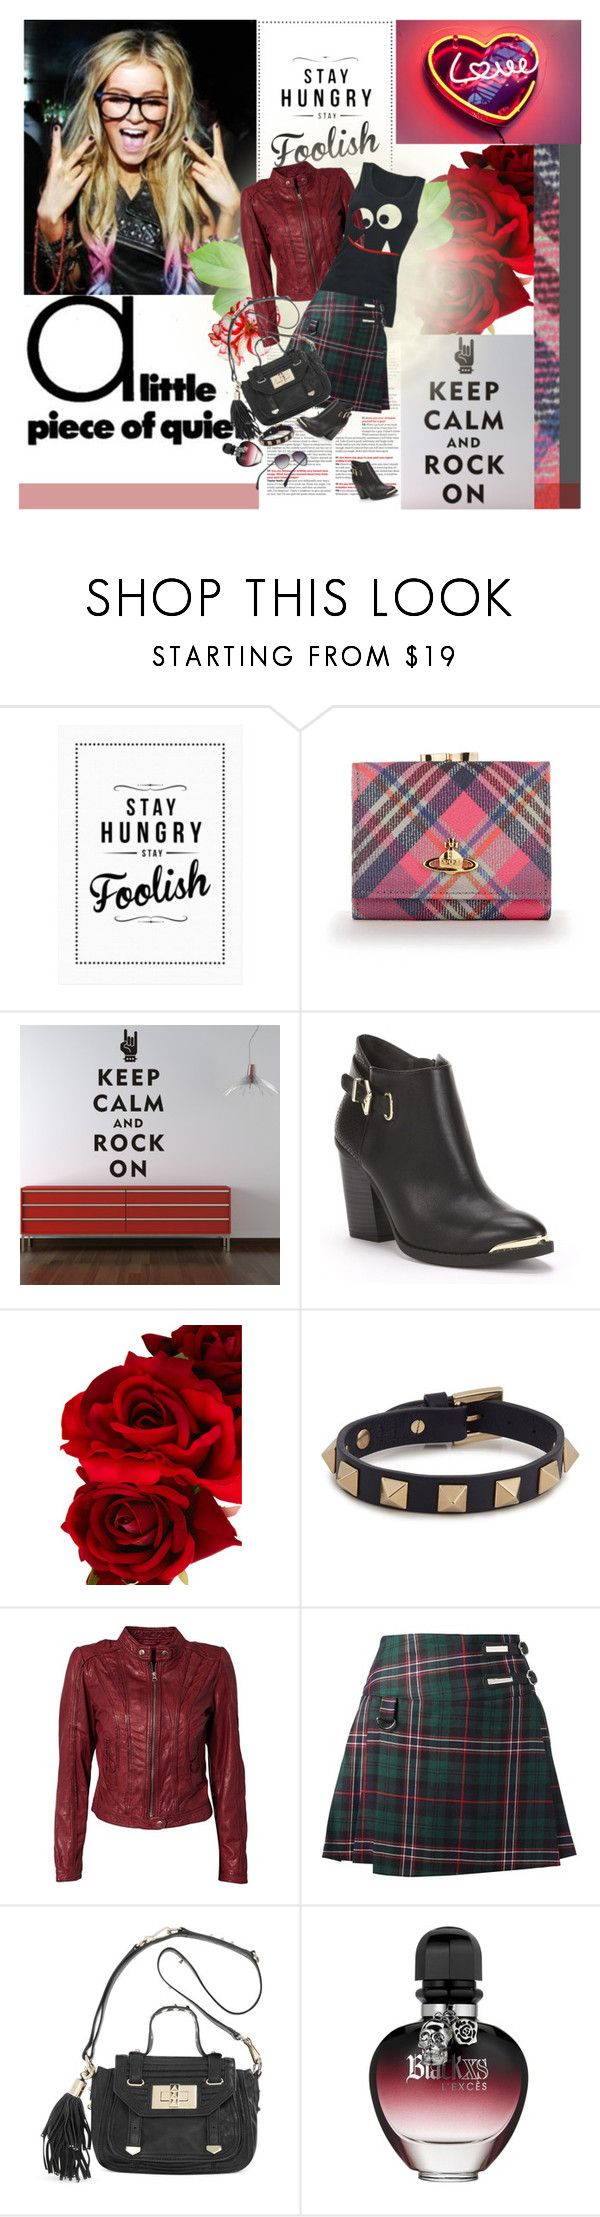 """""""Happy day!"""" by vkmd ❤ liked on Polyvore featuring WallStar Graphics, Rock & Republic, Rock 'N Rose, Valentino, Rock'N Blue, Dondup, Juicy Couture, Paco Rabanne and Paul Smith"""